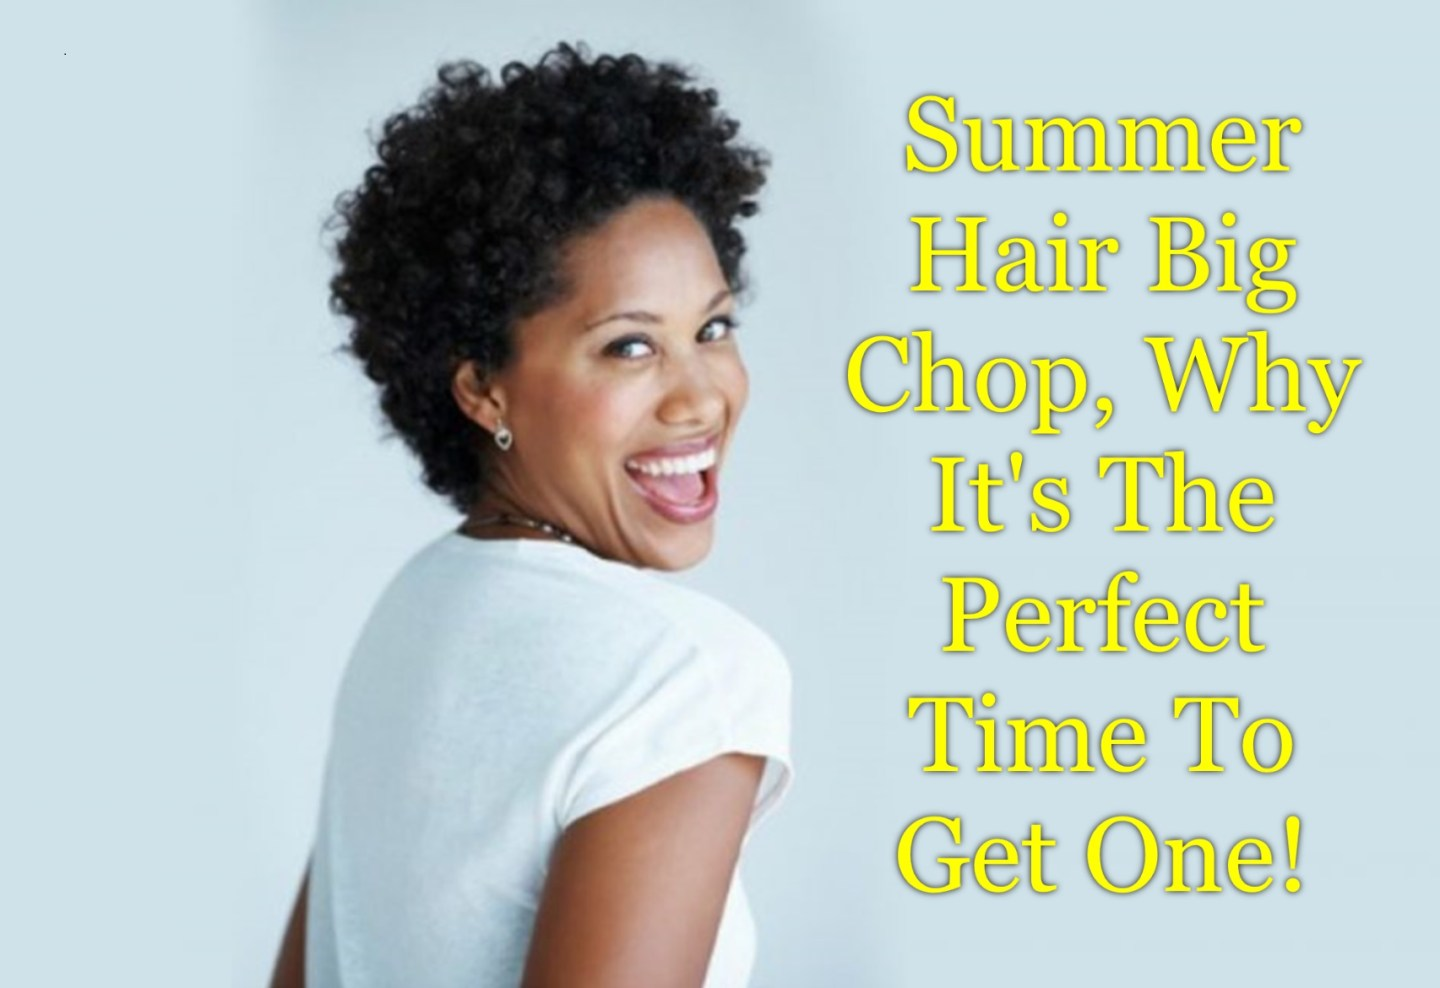 Summer hair is about being cute and easy and we've got the top reasons why a Big Chop will be your go-to for all types of stylish wonder!